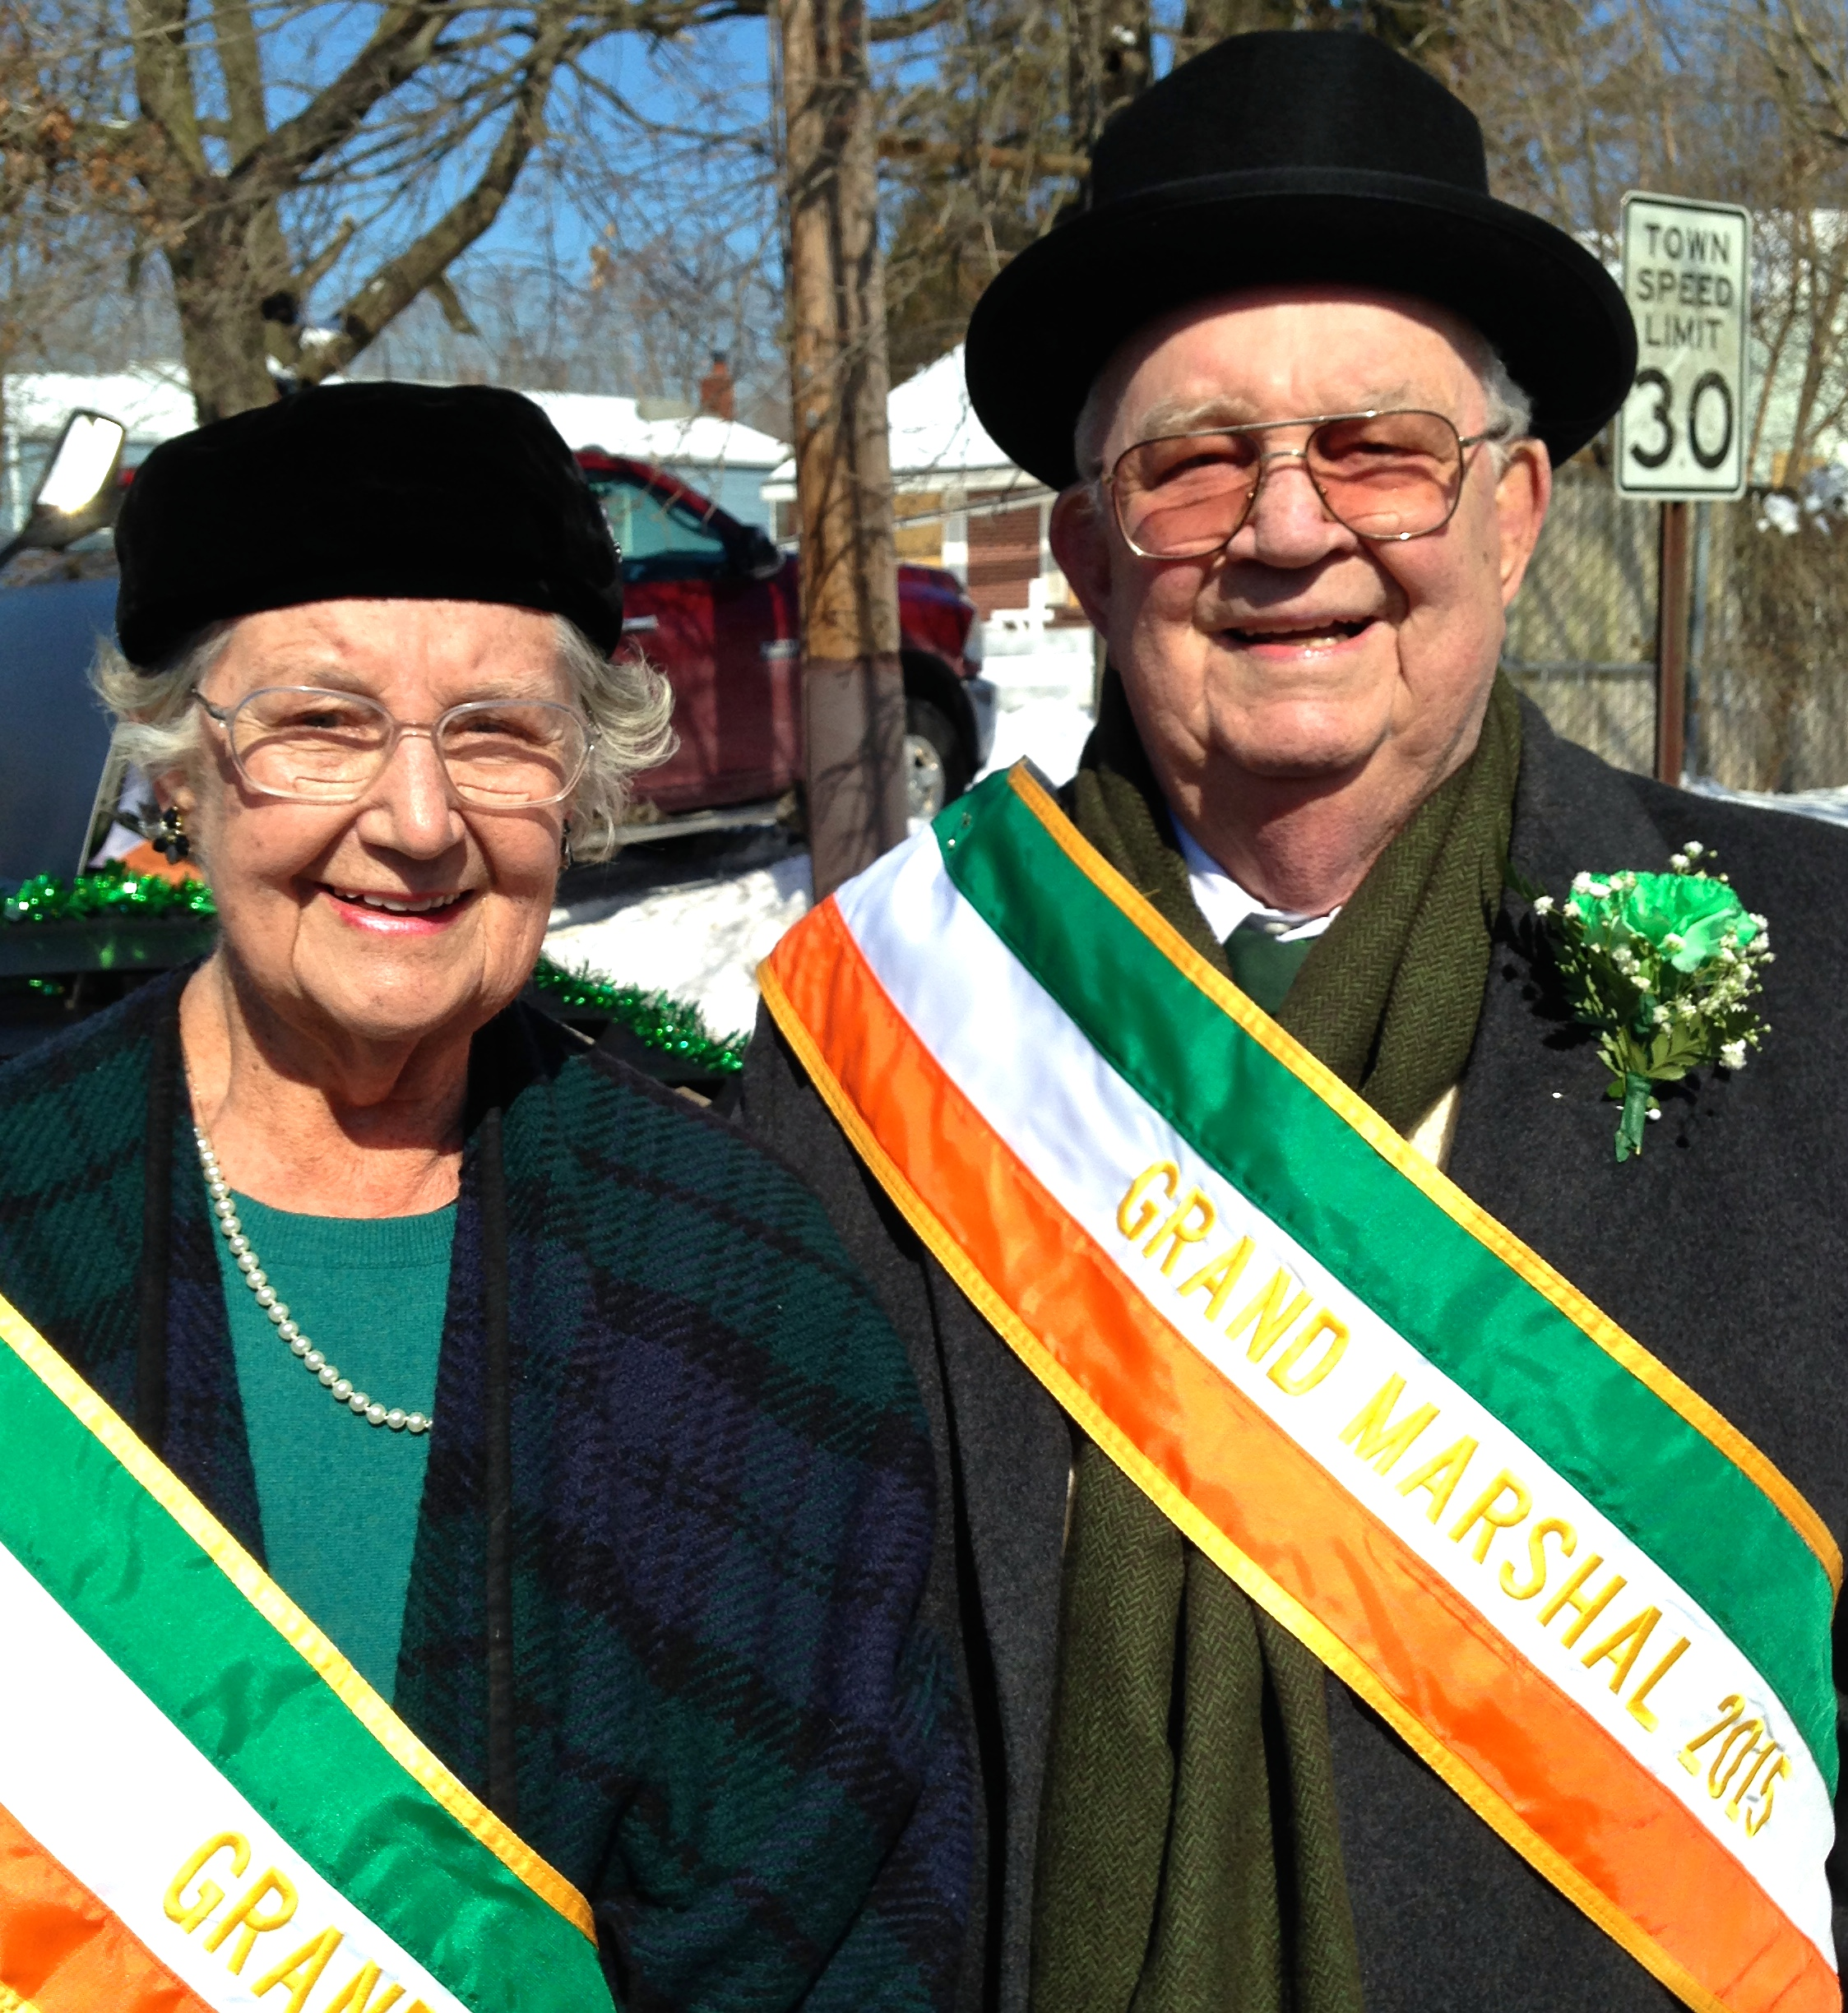 James Kirby, 87, and his sister Margaret Kirby Foley, 89, are co-grand marshals of the Kings Park St. Patrick's Day Parade on Saturday, March 7. (Photo:Joseph Kellard)